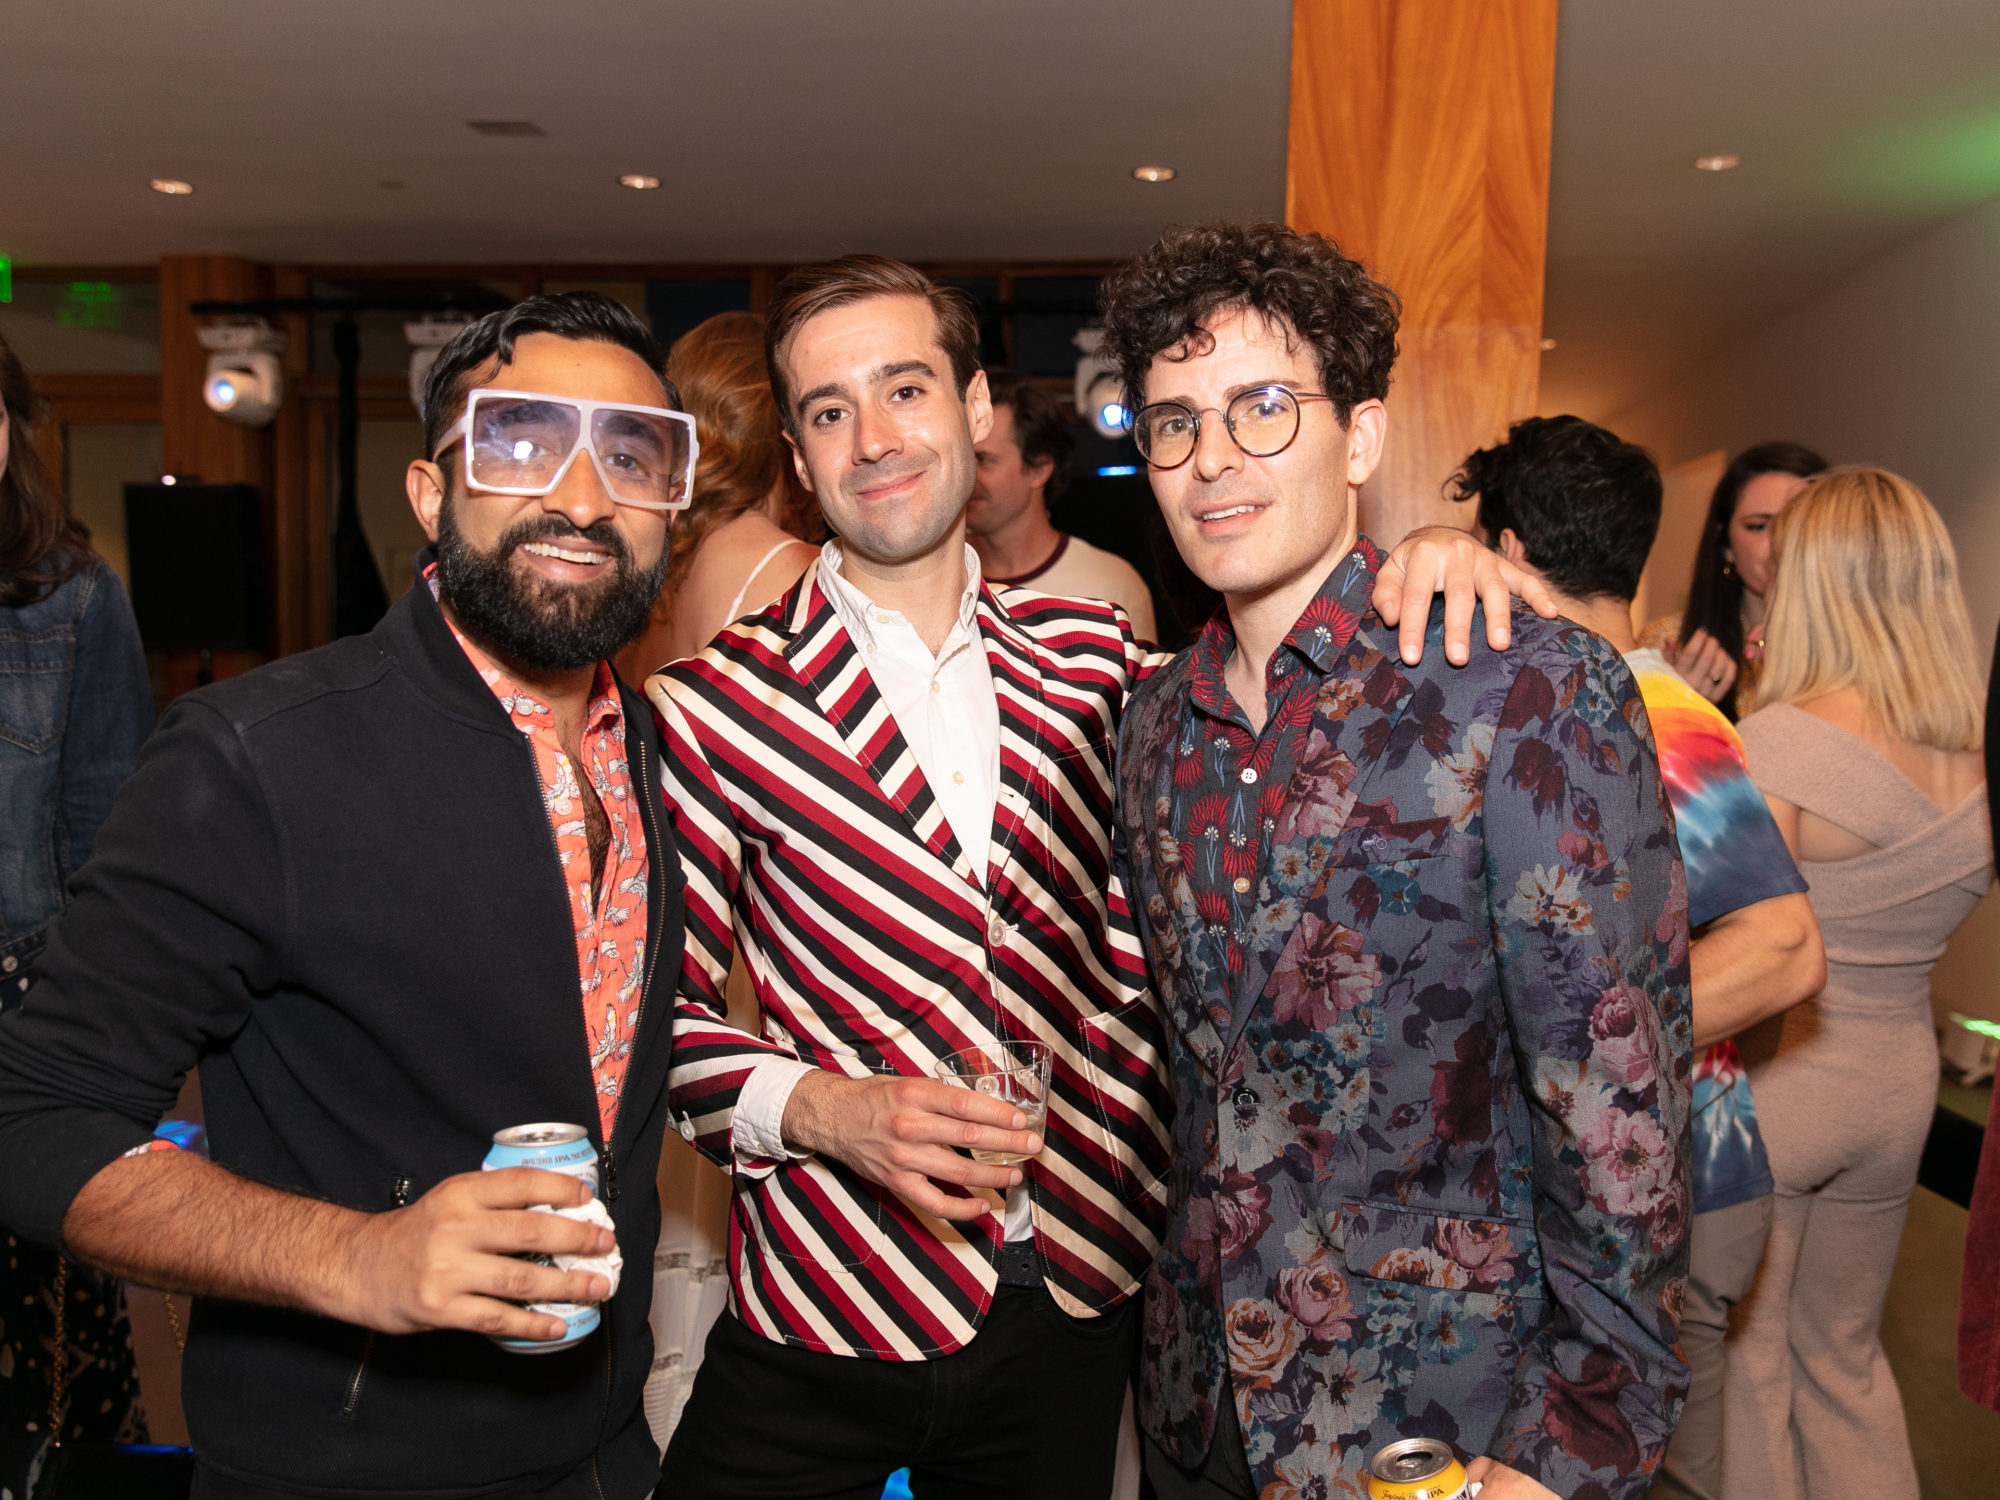 Three men at a party.